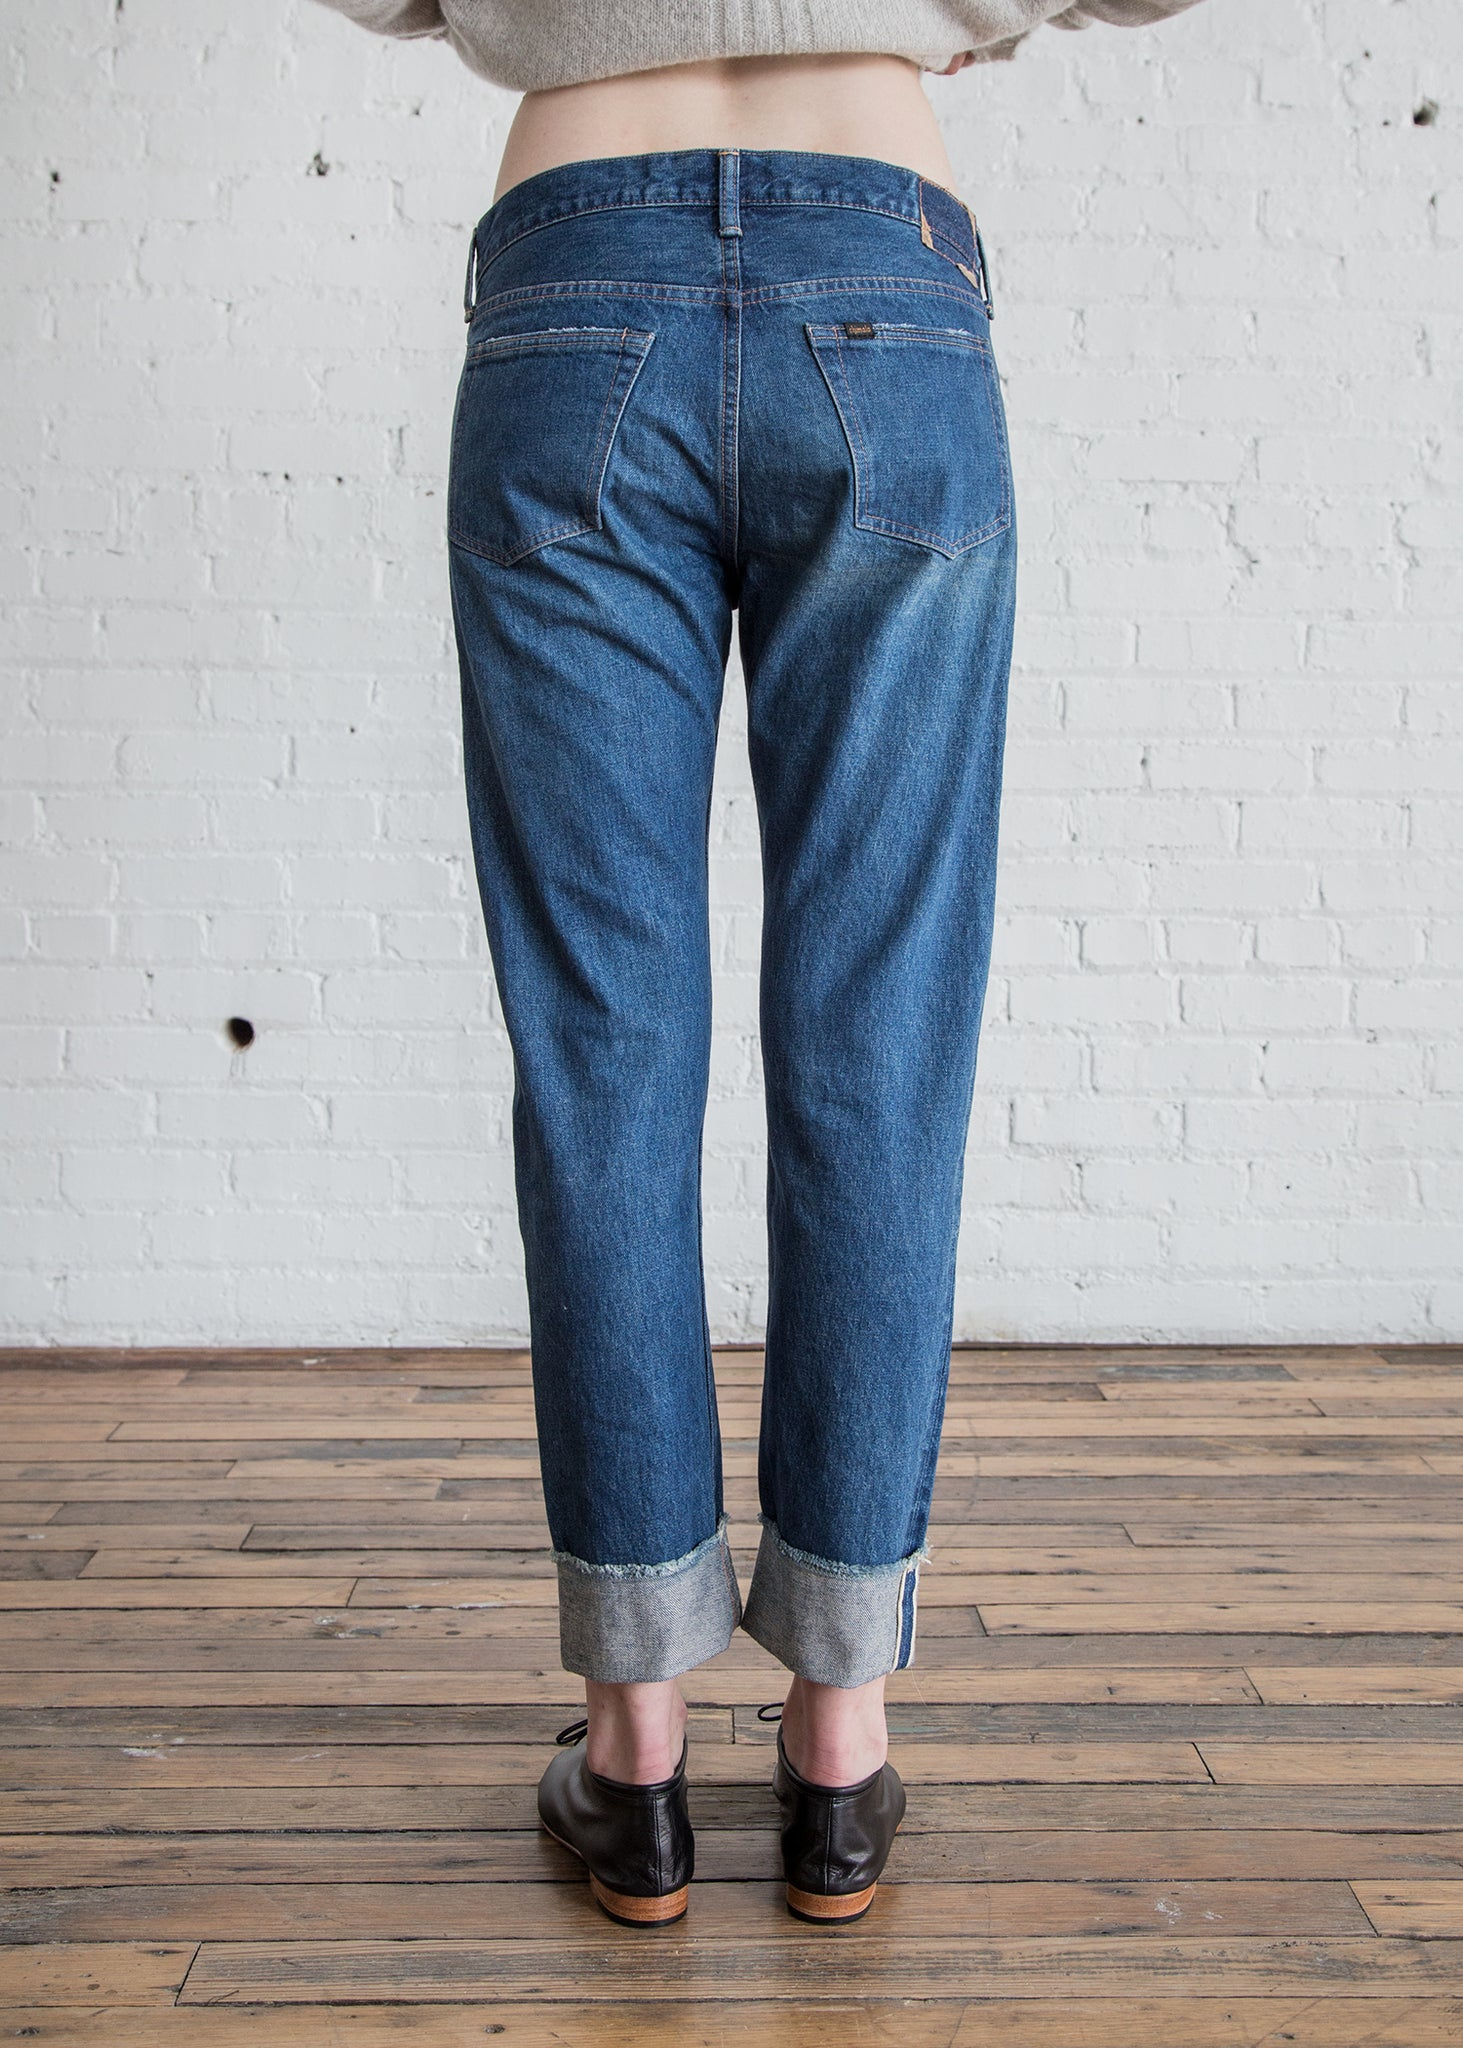 Chimala Selvedge Denim Narrow Tapered Cut Denim Damaged Medium